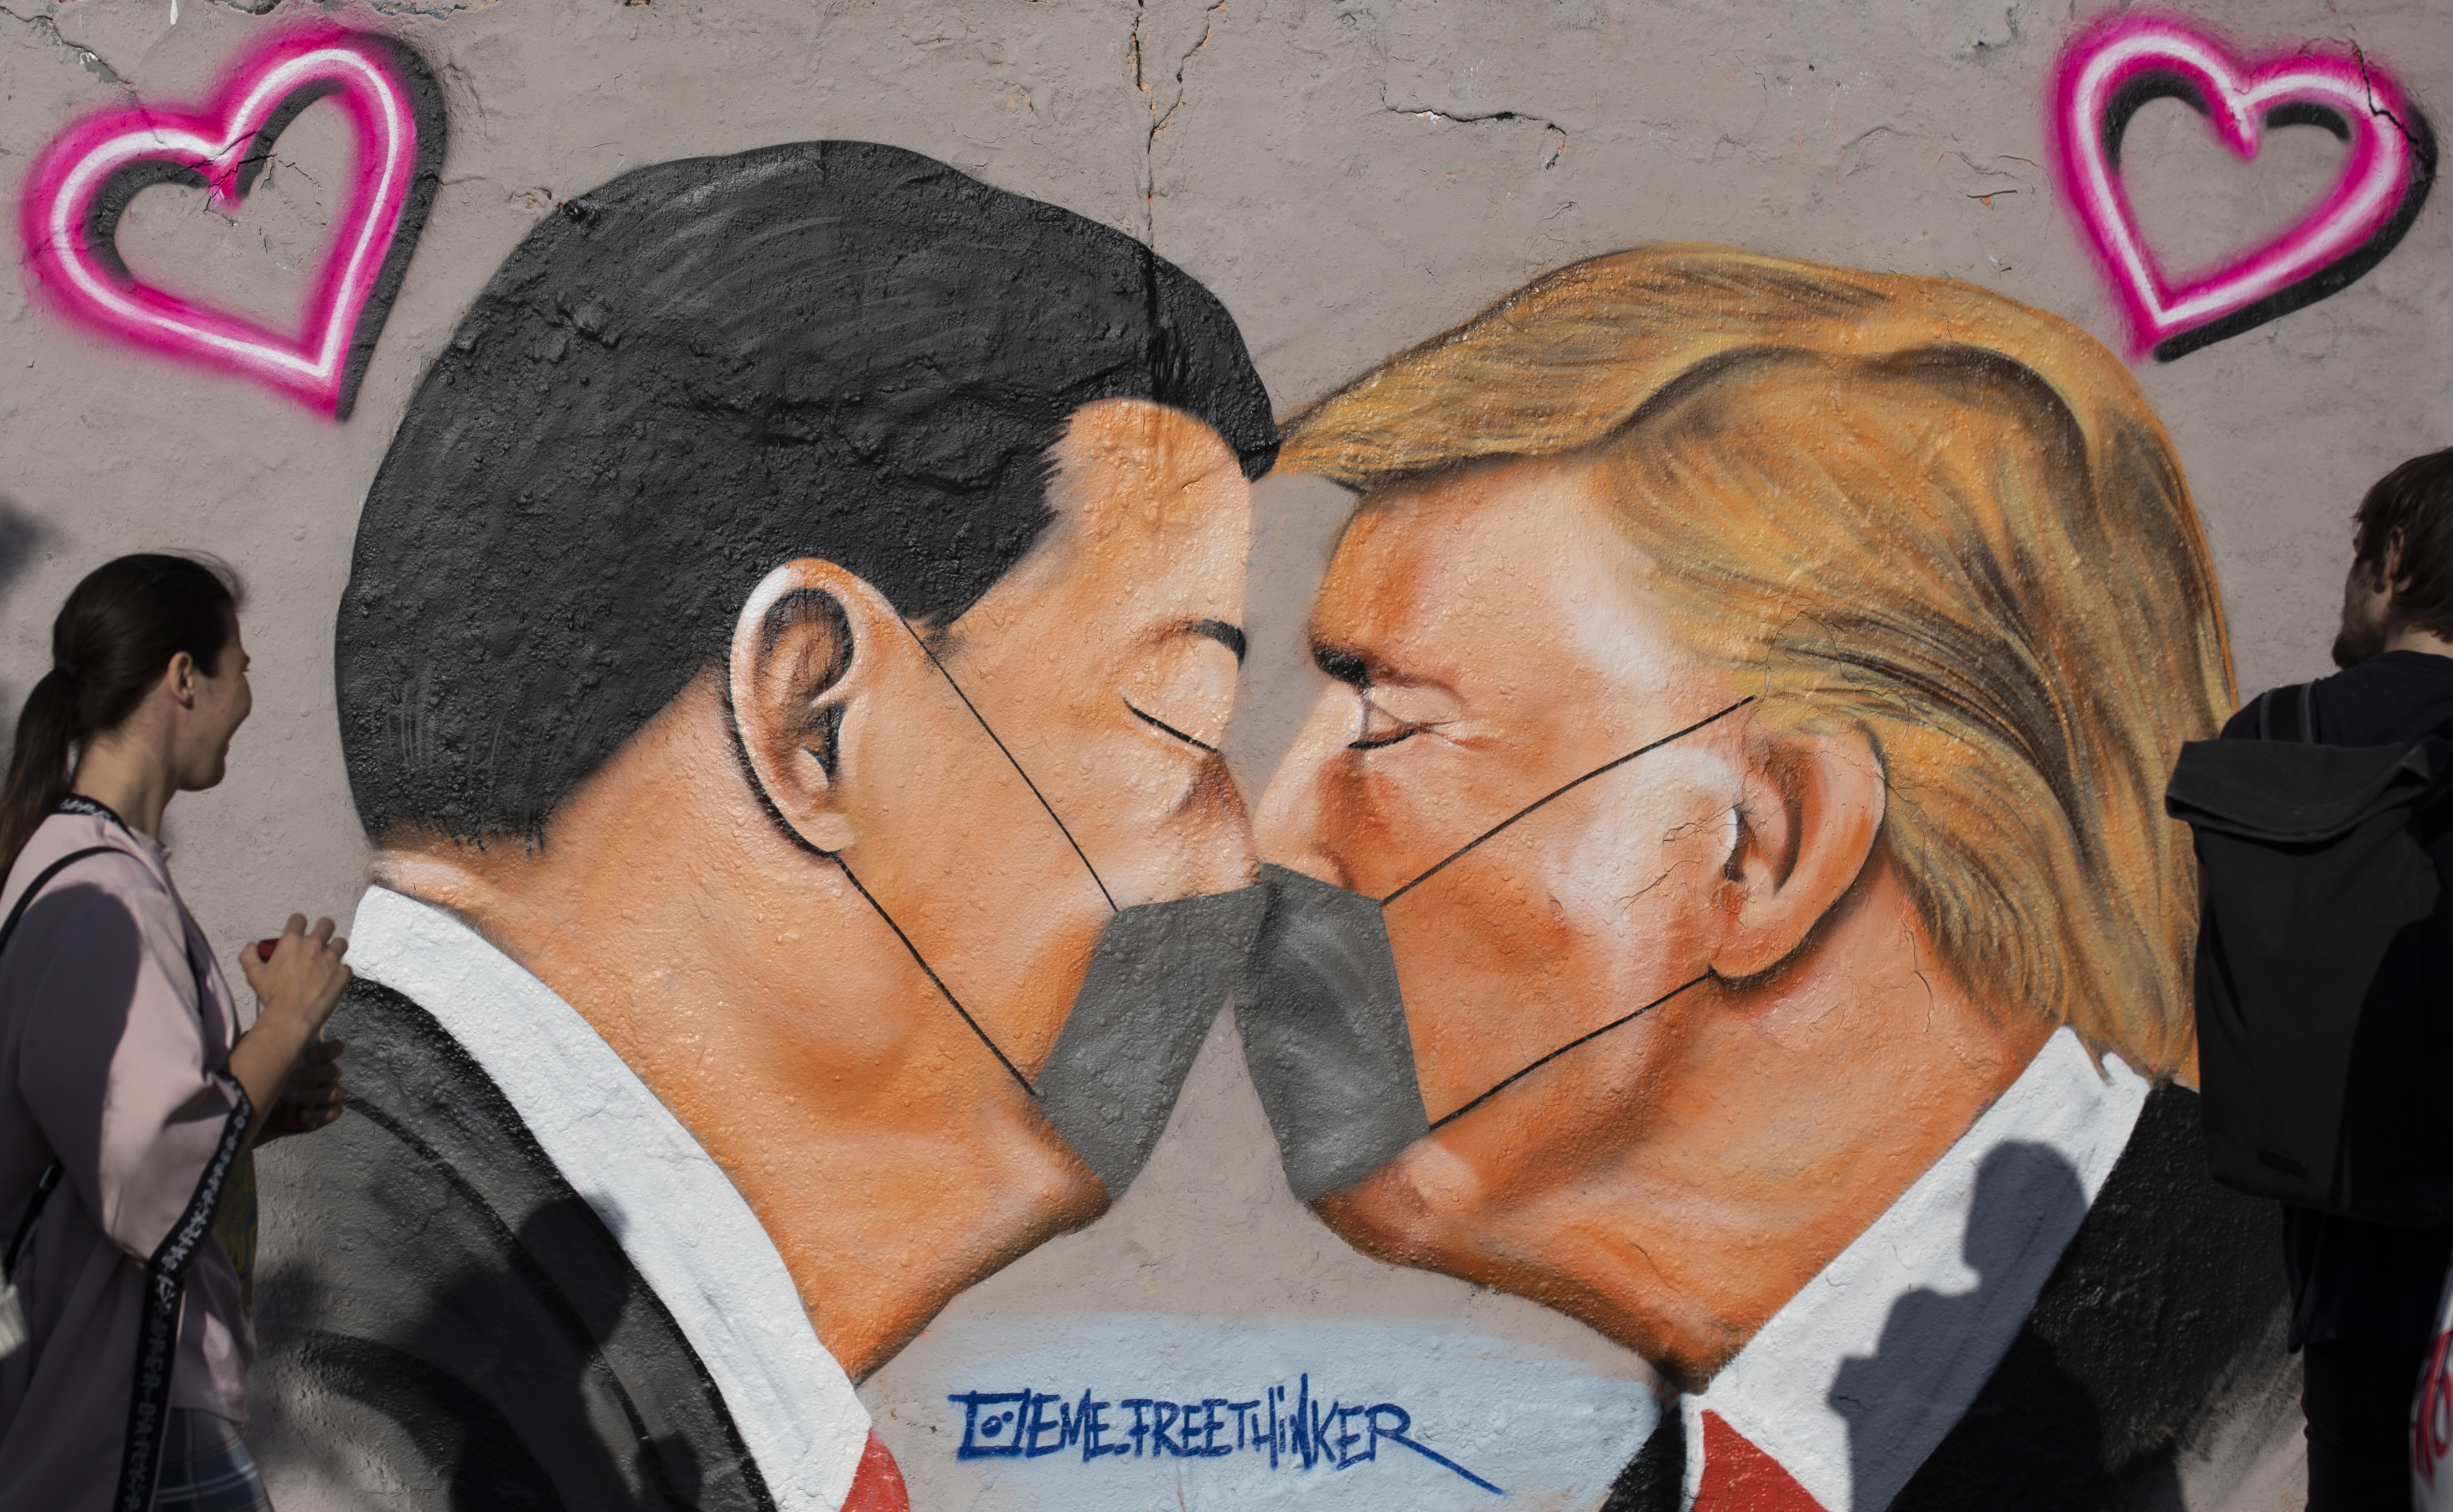 BERLIN, GERMANY - APRIL 26: Graffiti showing US President Donald Trump and Chinese President Xi Jinping, wearing protective masks kissing is seen during the novel coronavirus crisis on April 26, 2020 in Berlin, Germany. Germany is taking its first steps to ease restrictions on public life that had been imposed weeks ago in order to stem the spread of the coronavirus. Shops across the country are reopening, factory assembly lines are restarting and high schools are holding final exams. Health leaders are monitoring the process carefully for any resurgence of coronavirus infections. The number of infections nationwide is still rising, though so far at a declining rate. (Photo by Maja Hitij/Getty Images)